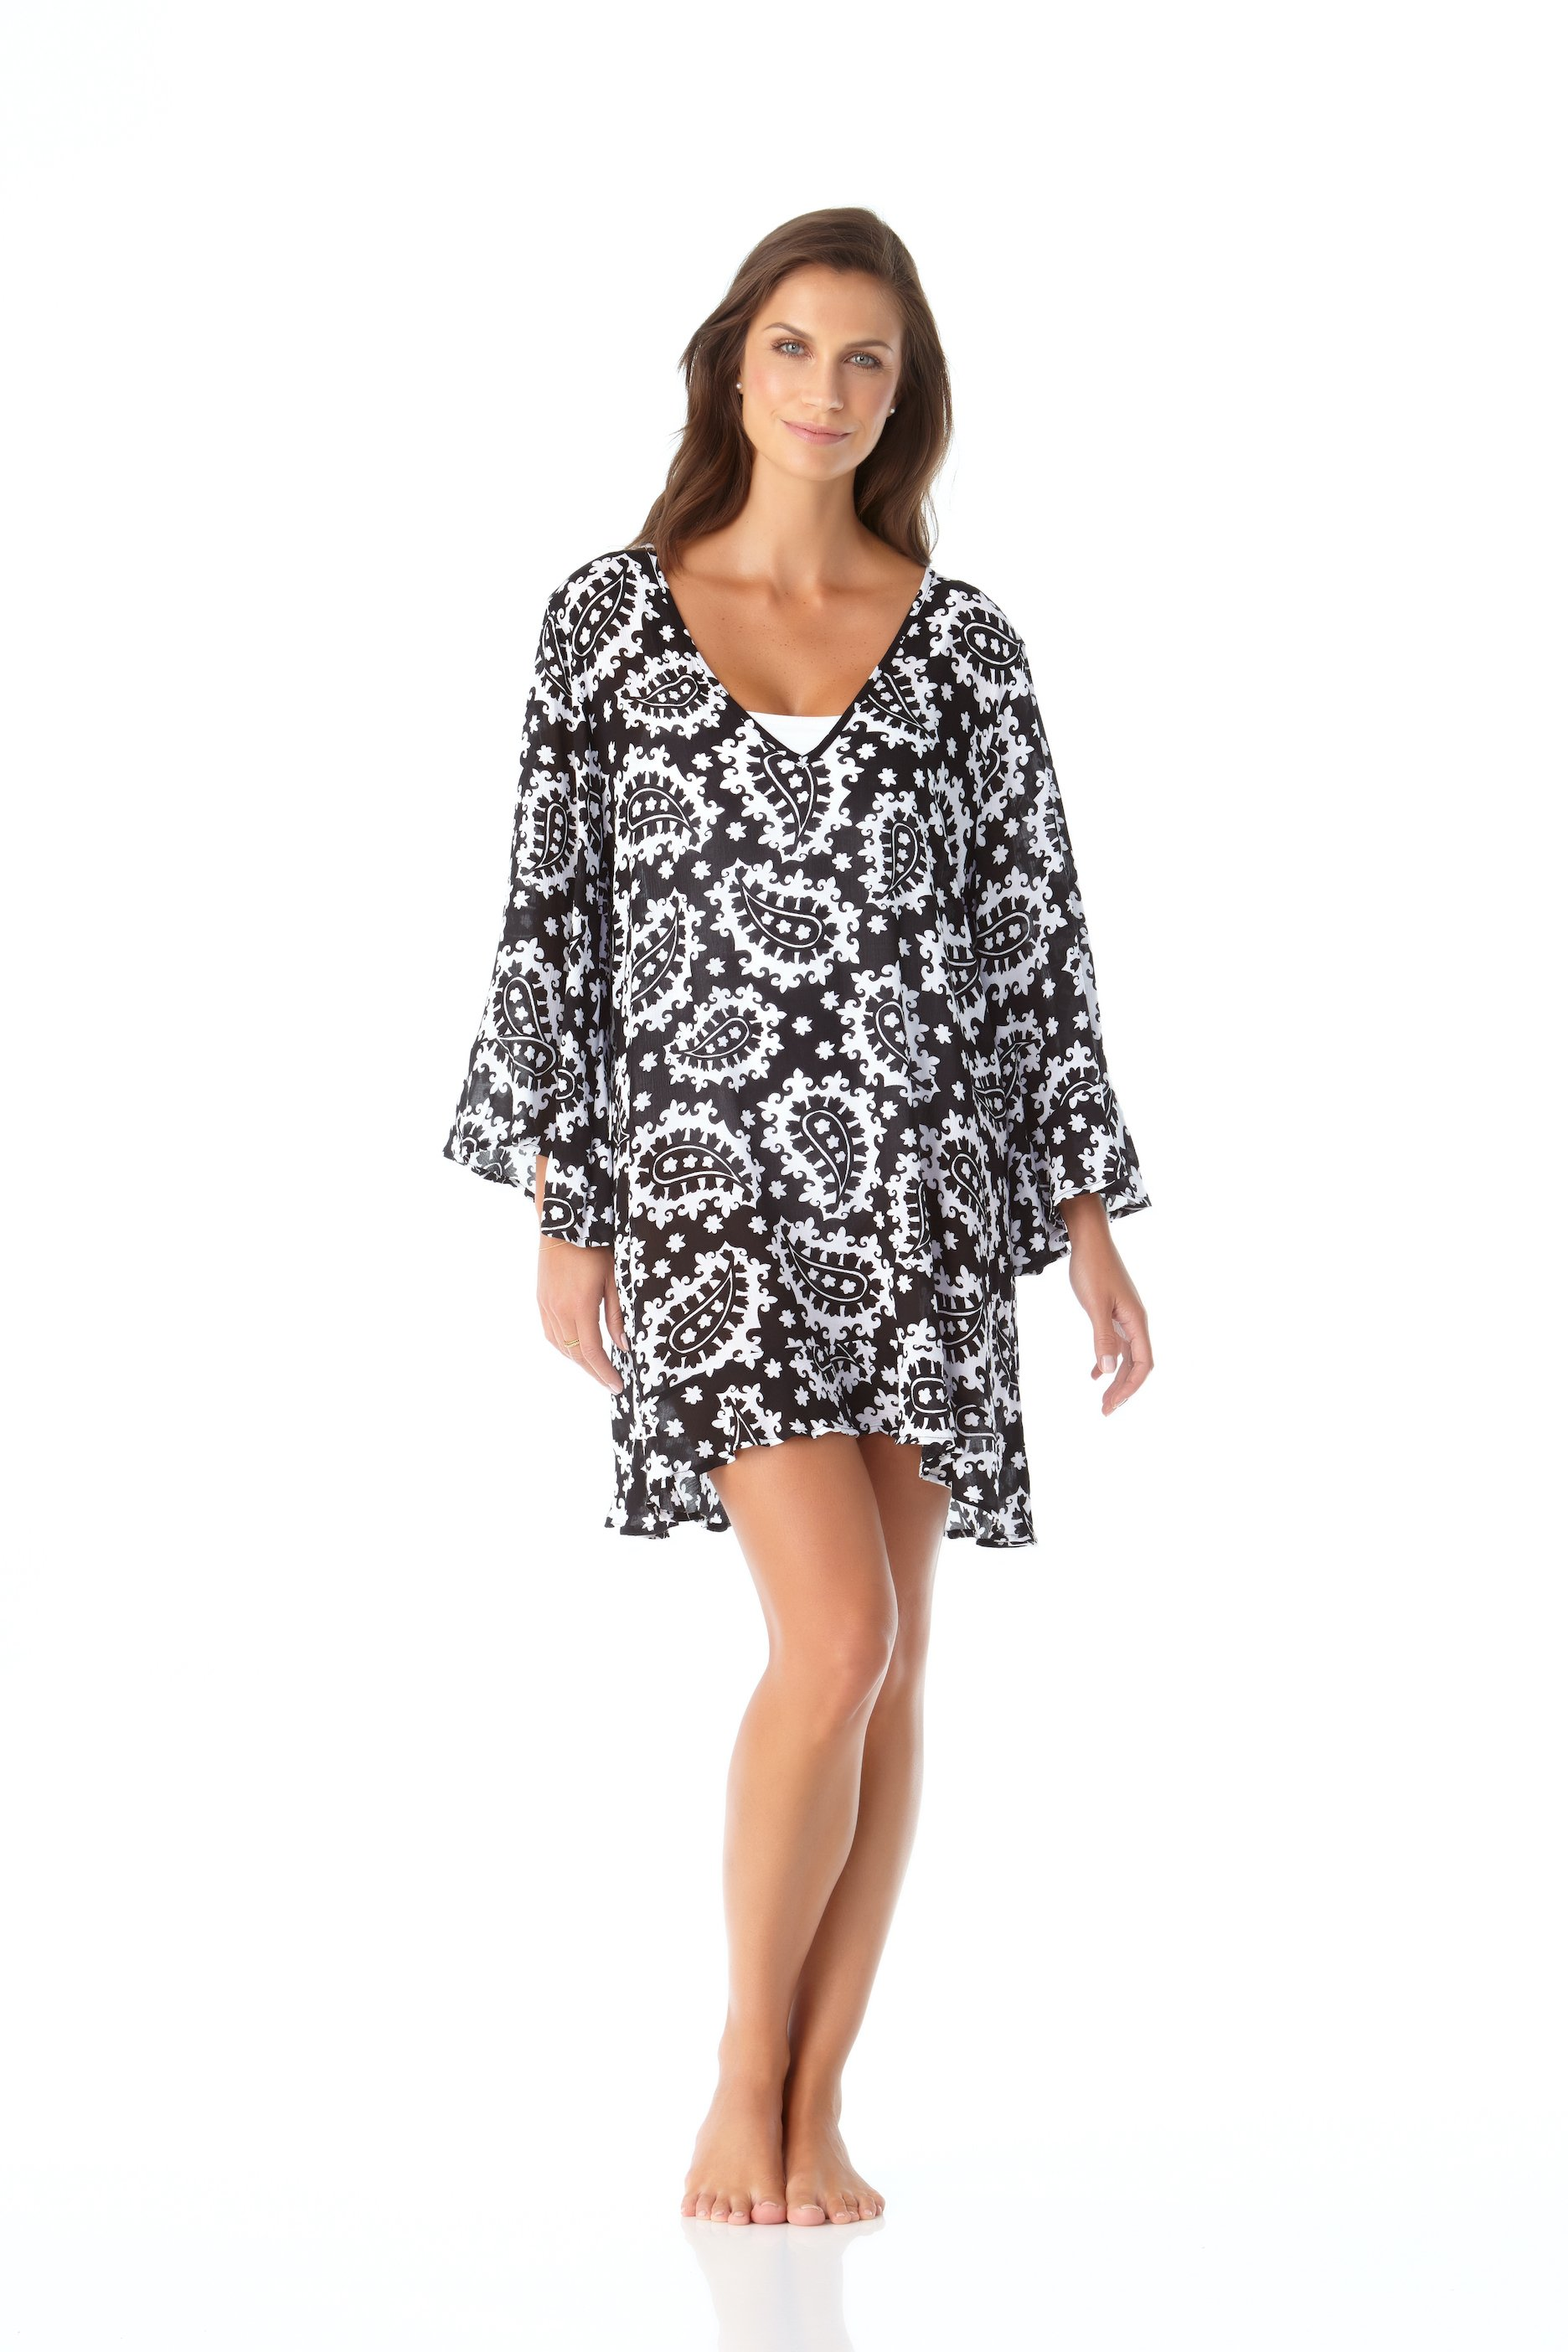 Anne Cole® Riveria Paisley Flounce Sleeve Tunic Swimsuit Cover-Up -Black/White - Front